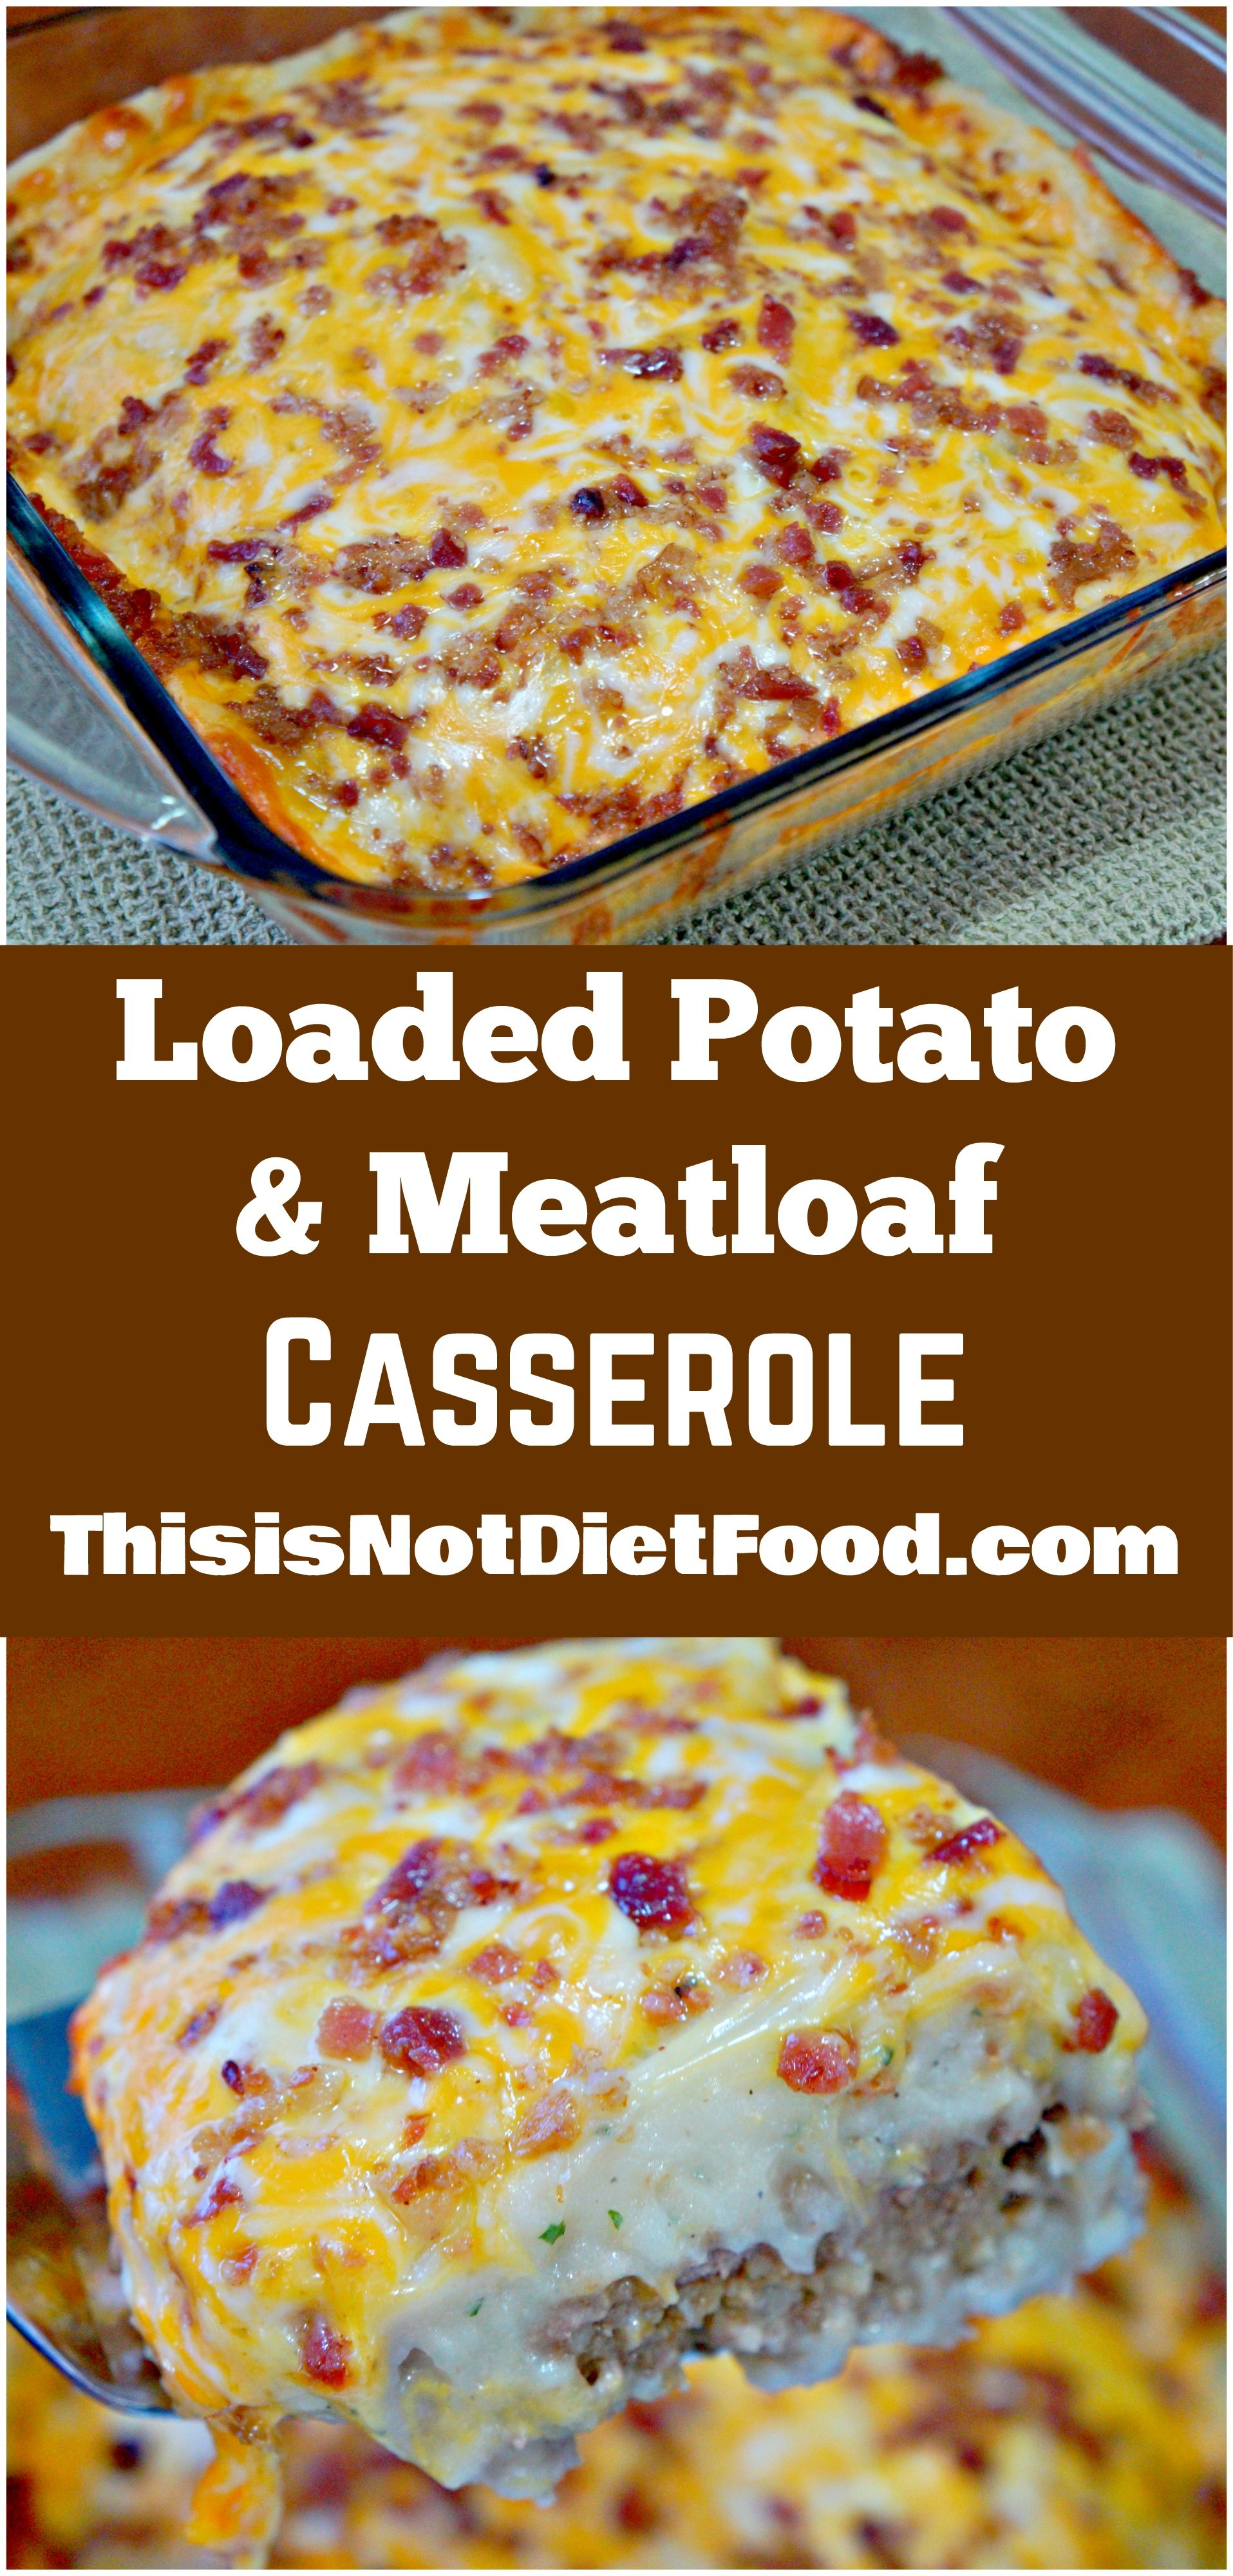 Loaded Potato And Meatloaf Casserole Easy Dinner Recipe With Ground Beef And Instant Mashed Potatoes Topped With Cheese And Bac Beef Recipes Easy Recipes Food